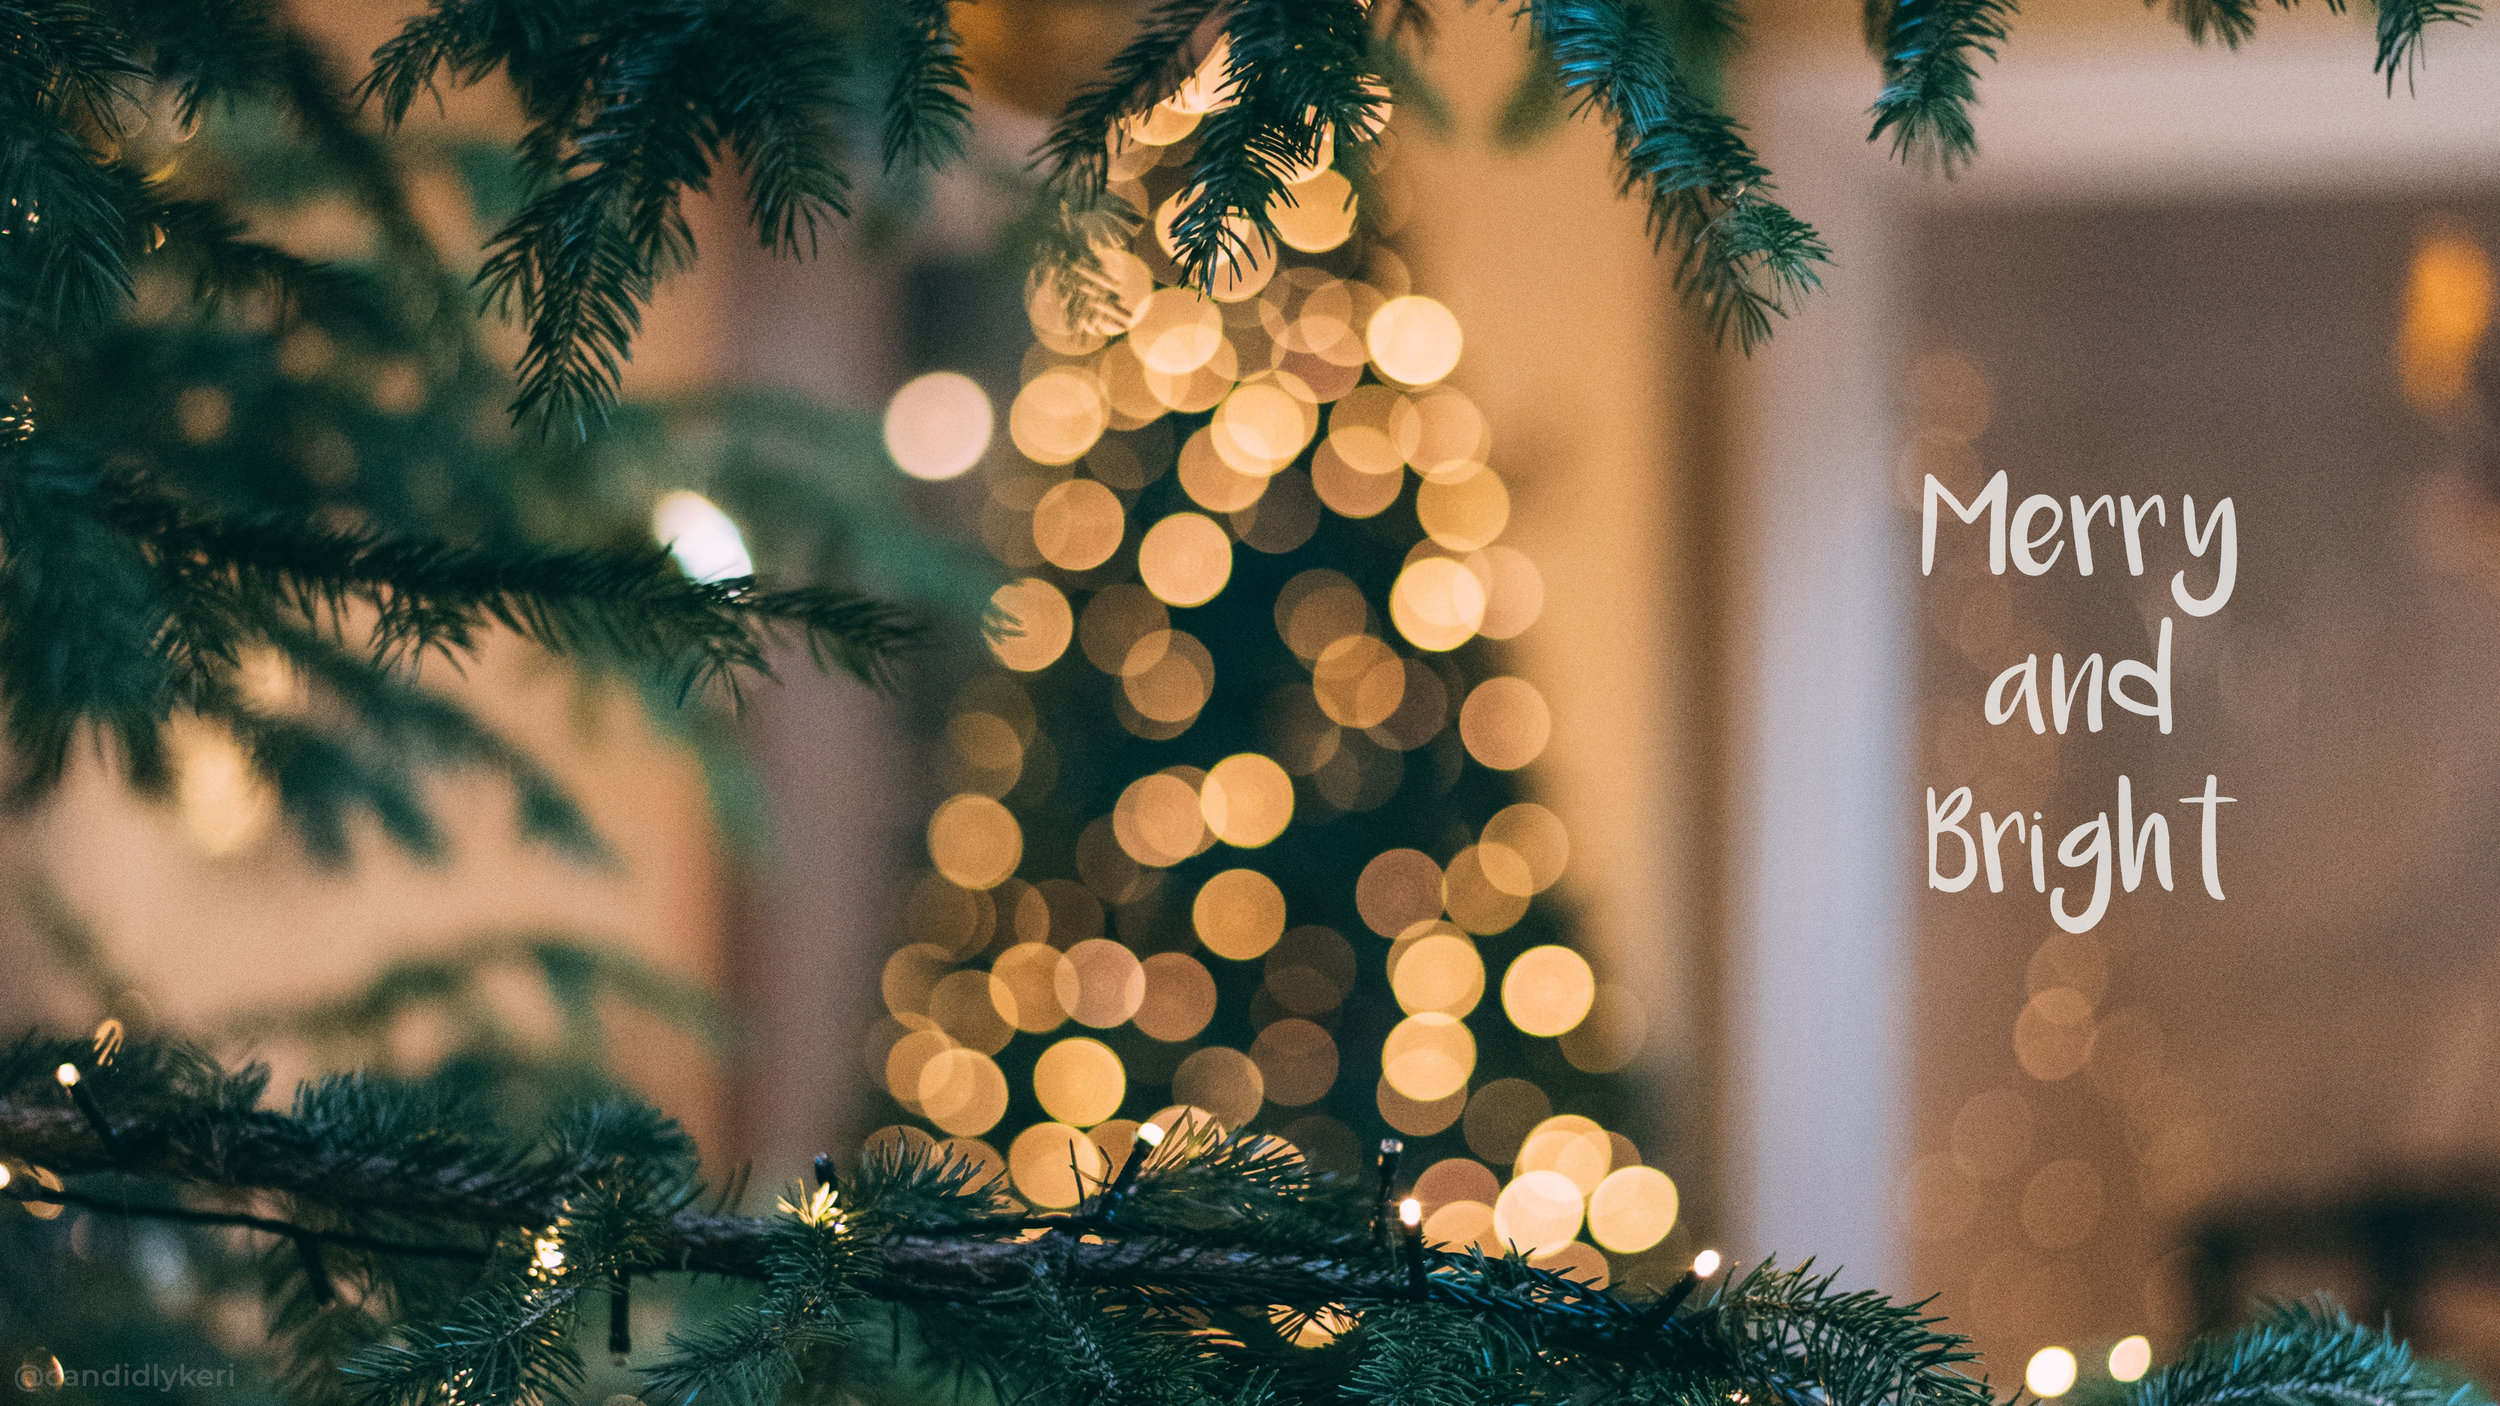 Christmas Holiday Wallpaper Merry And Bright